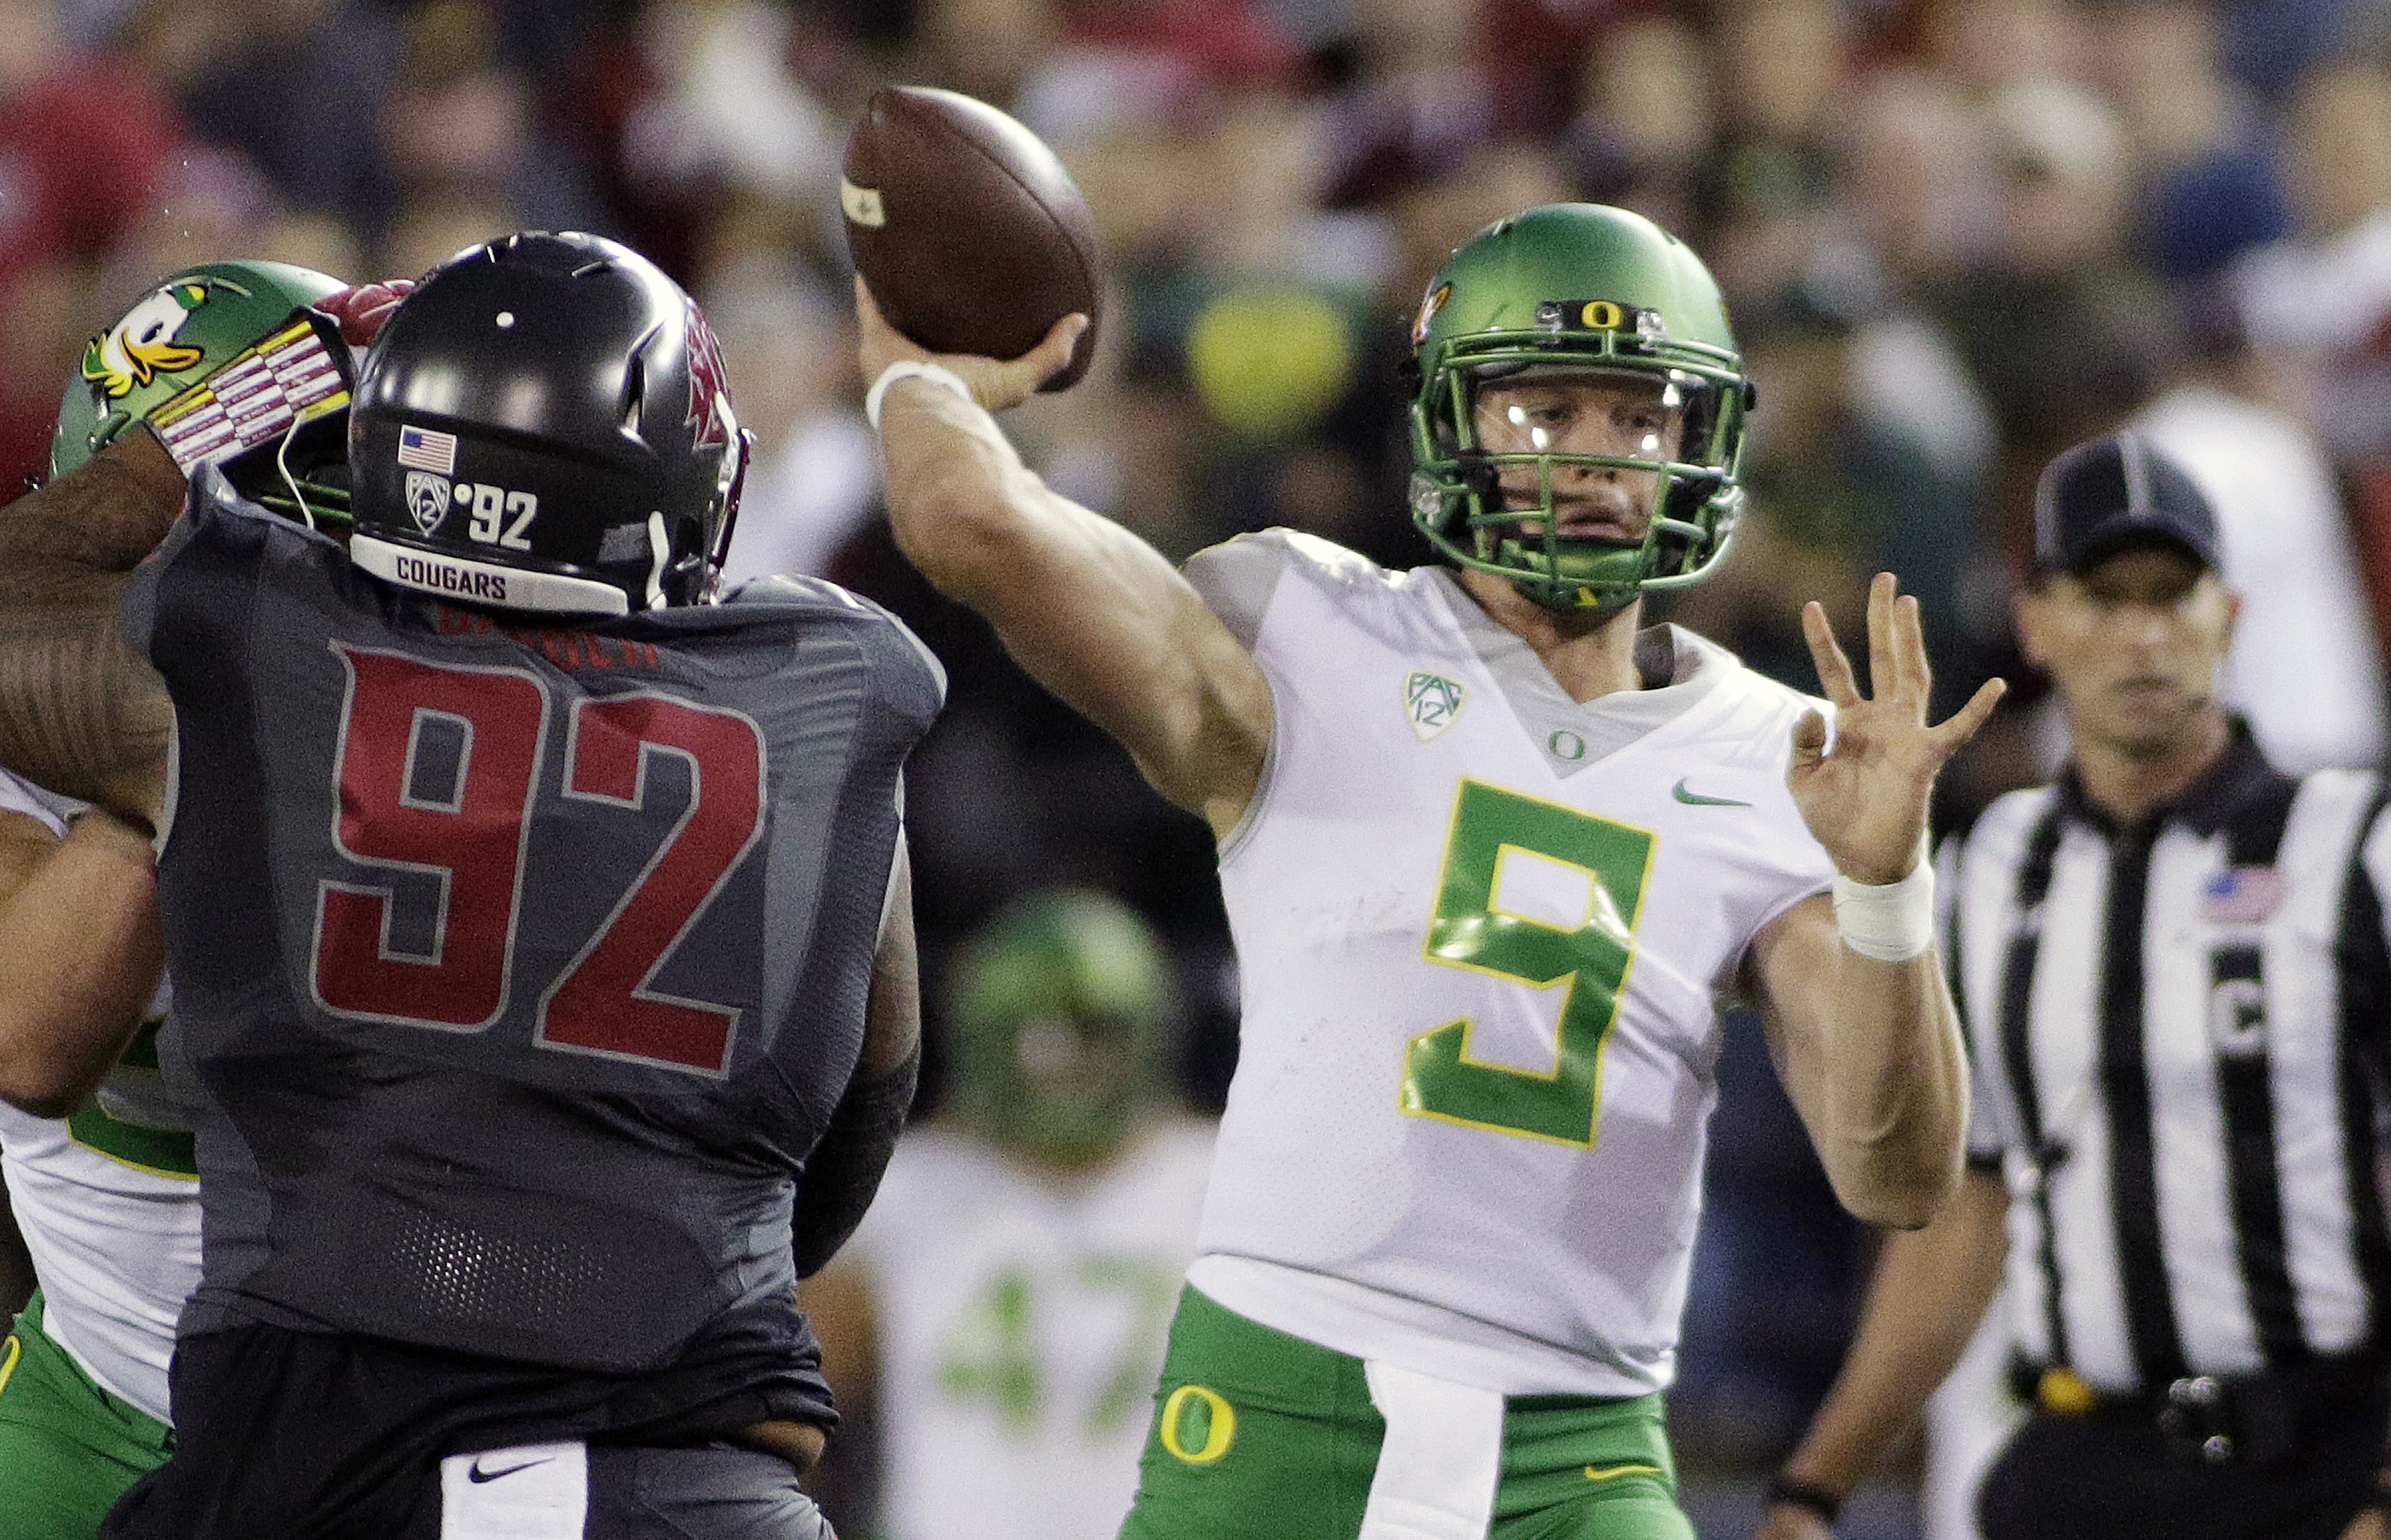 FILE - In this Oct. 1, 2016, file photo, Oregon quarterback Dakota Prukop (9) throws a pass during the first half of an NCAA college football game against Washington State in Pullman, Wash. Prukop, a graduate transfer from Montana State, has started in al